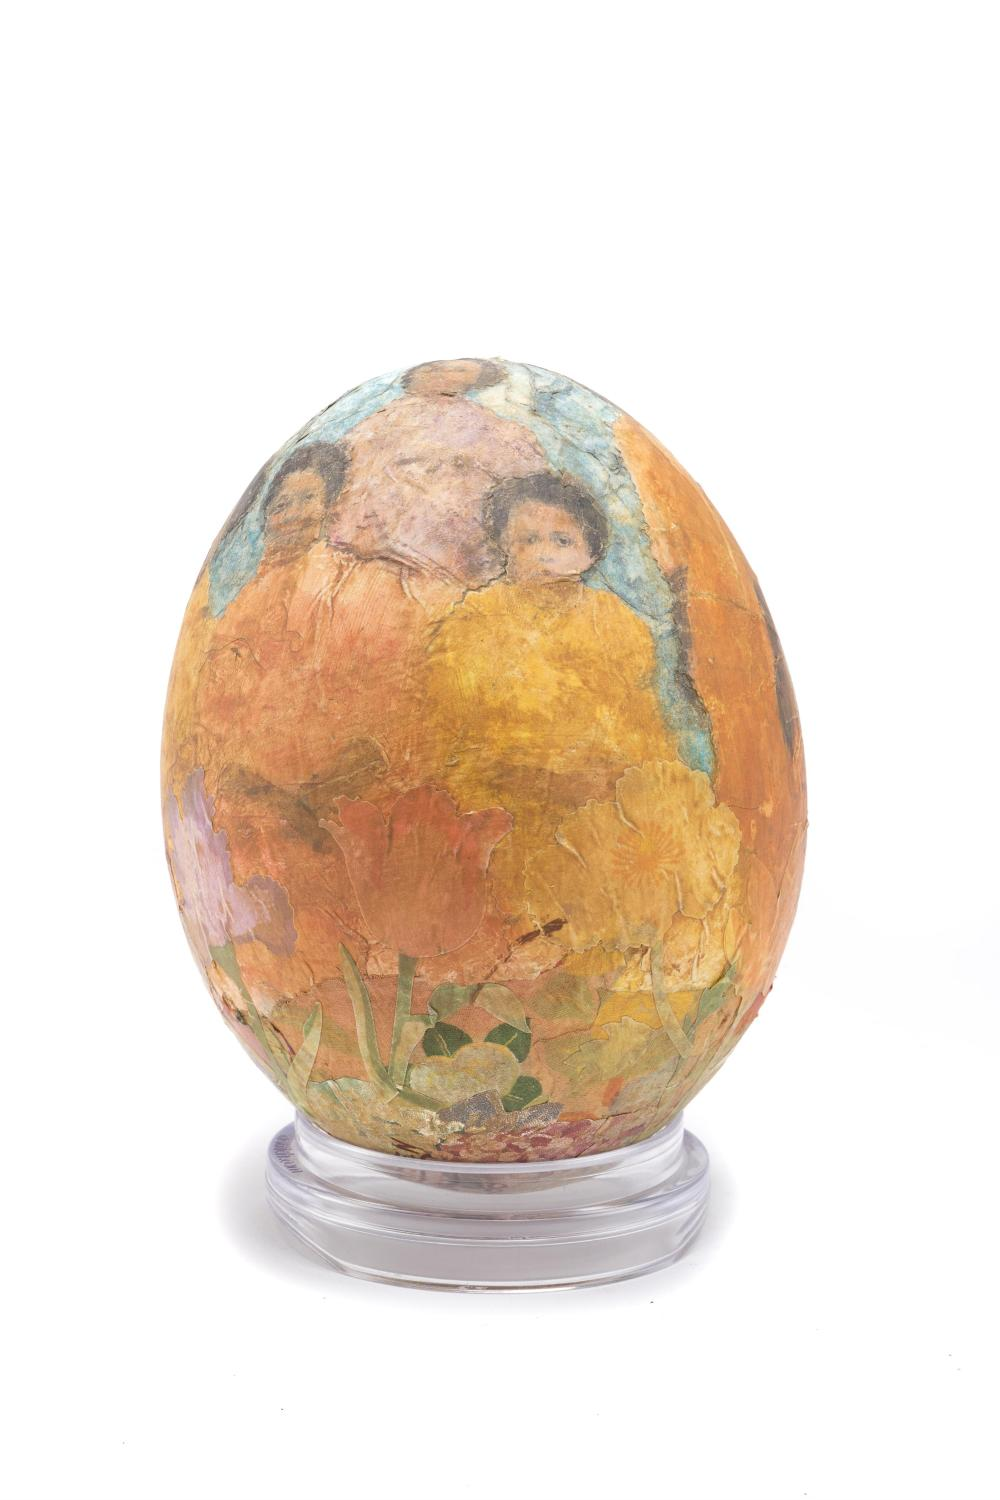 """Betye Saar, (b. 1926 Los Angeles, CA), """"In the Garden,"""" 2008, A decoupage ostrich egg, hand painted and printed paper, 6"""" H x 4.5"""" Dia."""